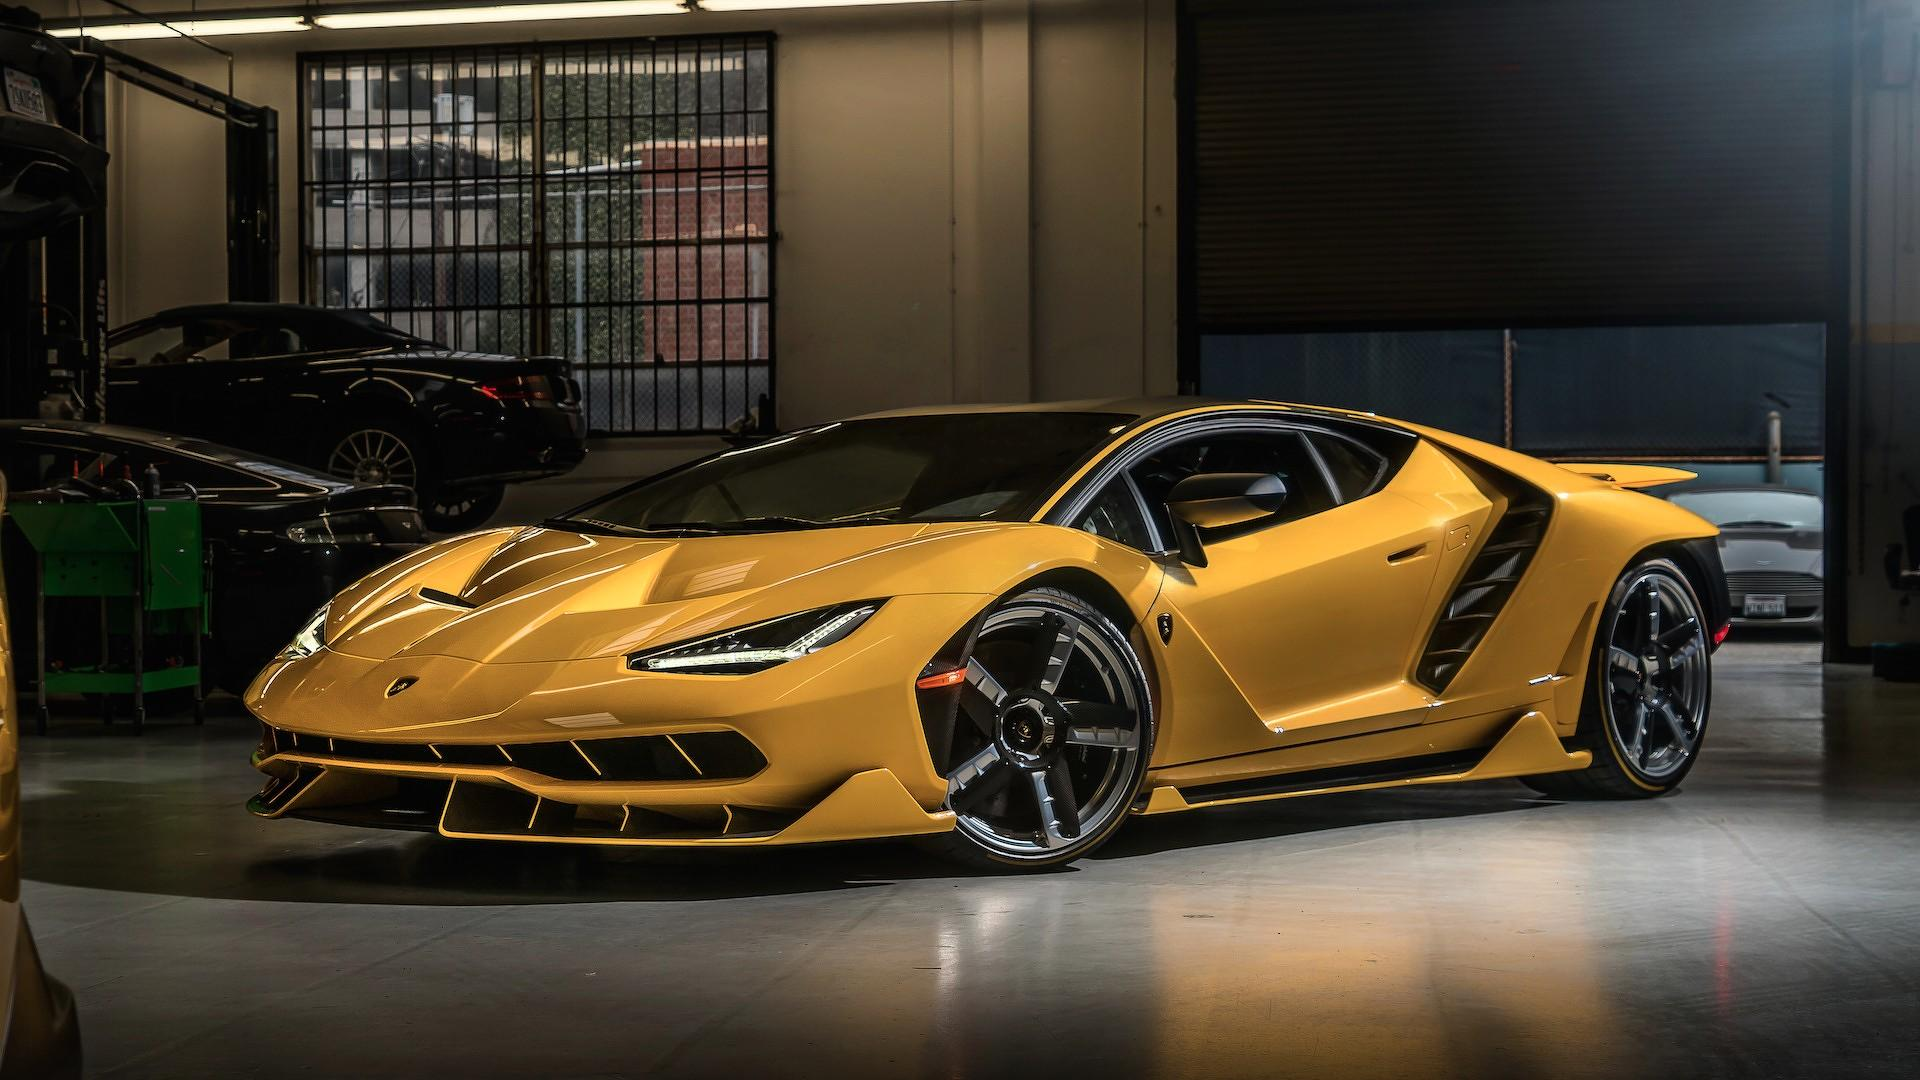 Awesome Race Car Wallpapers Two New Lamborghini Centenarios Have Landed In The U S